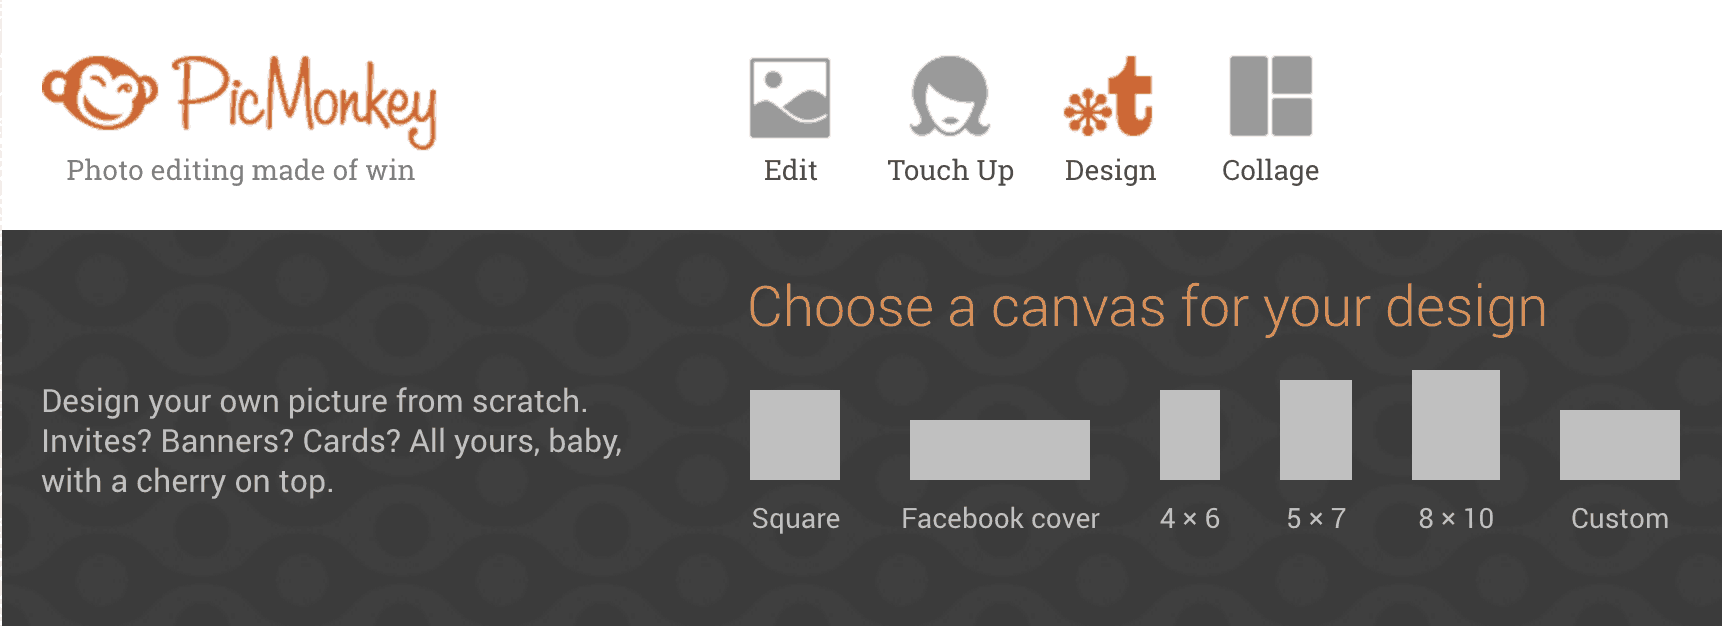 Choose the shape of your canvas on PicMonkey